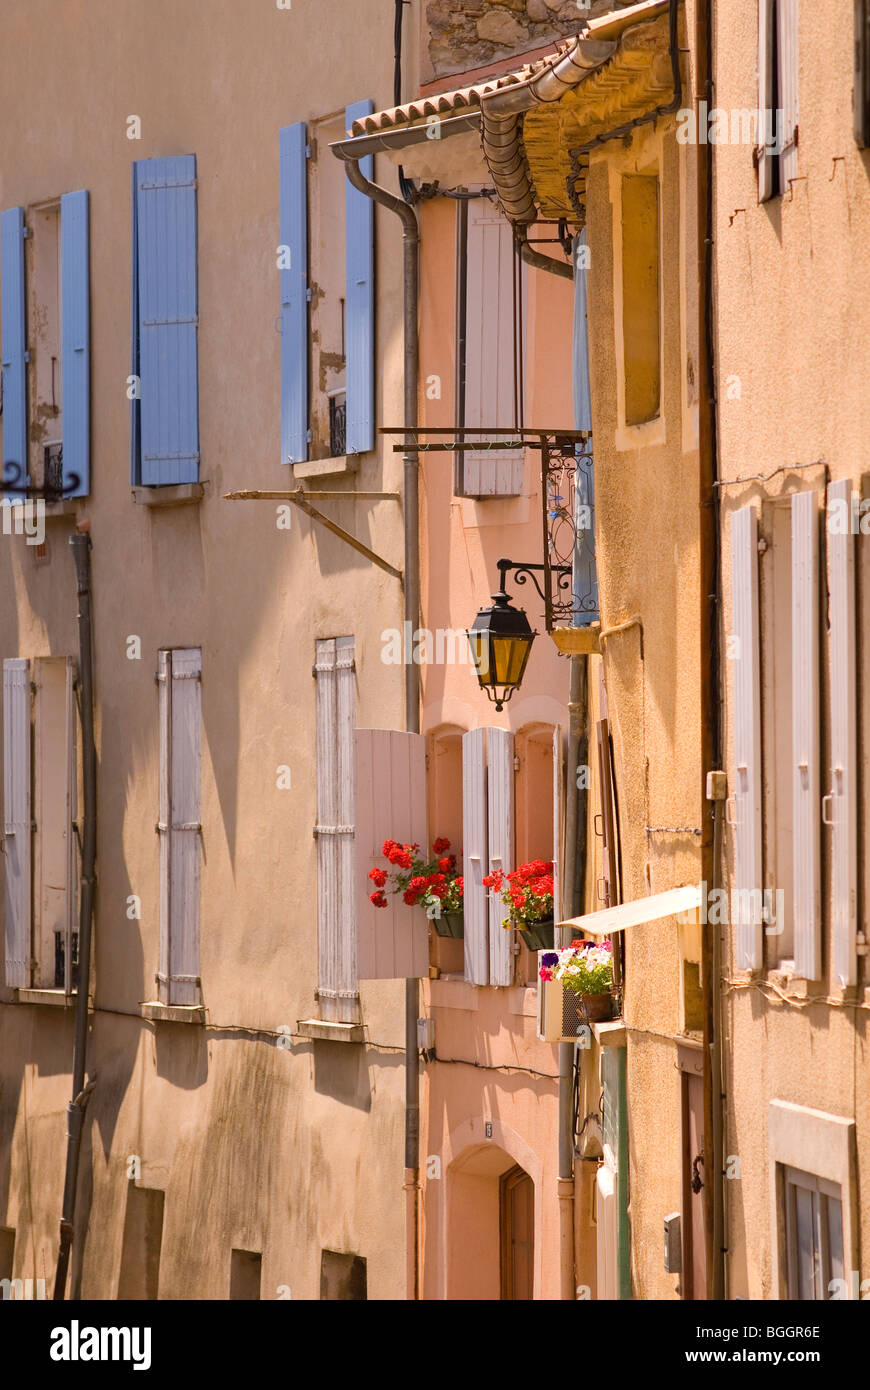 Facade of Buildings, Nyons, Provence, France,Europe - Stock Image